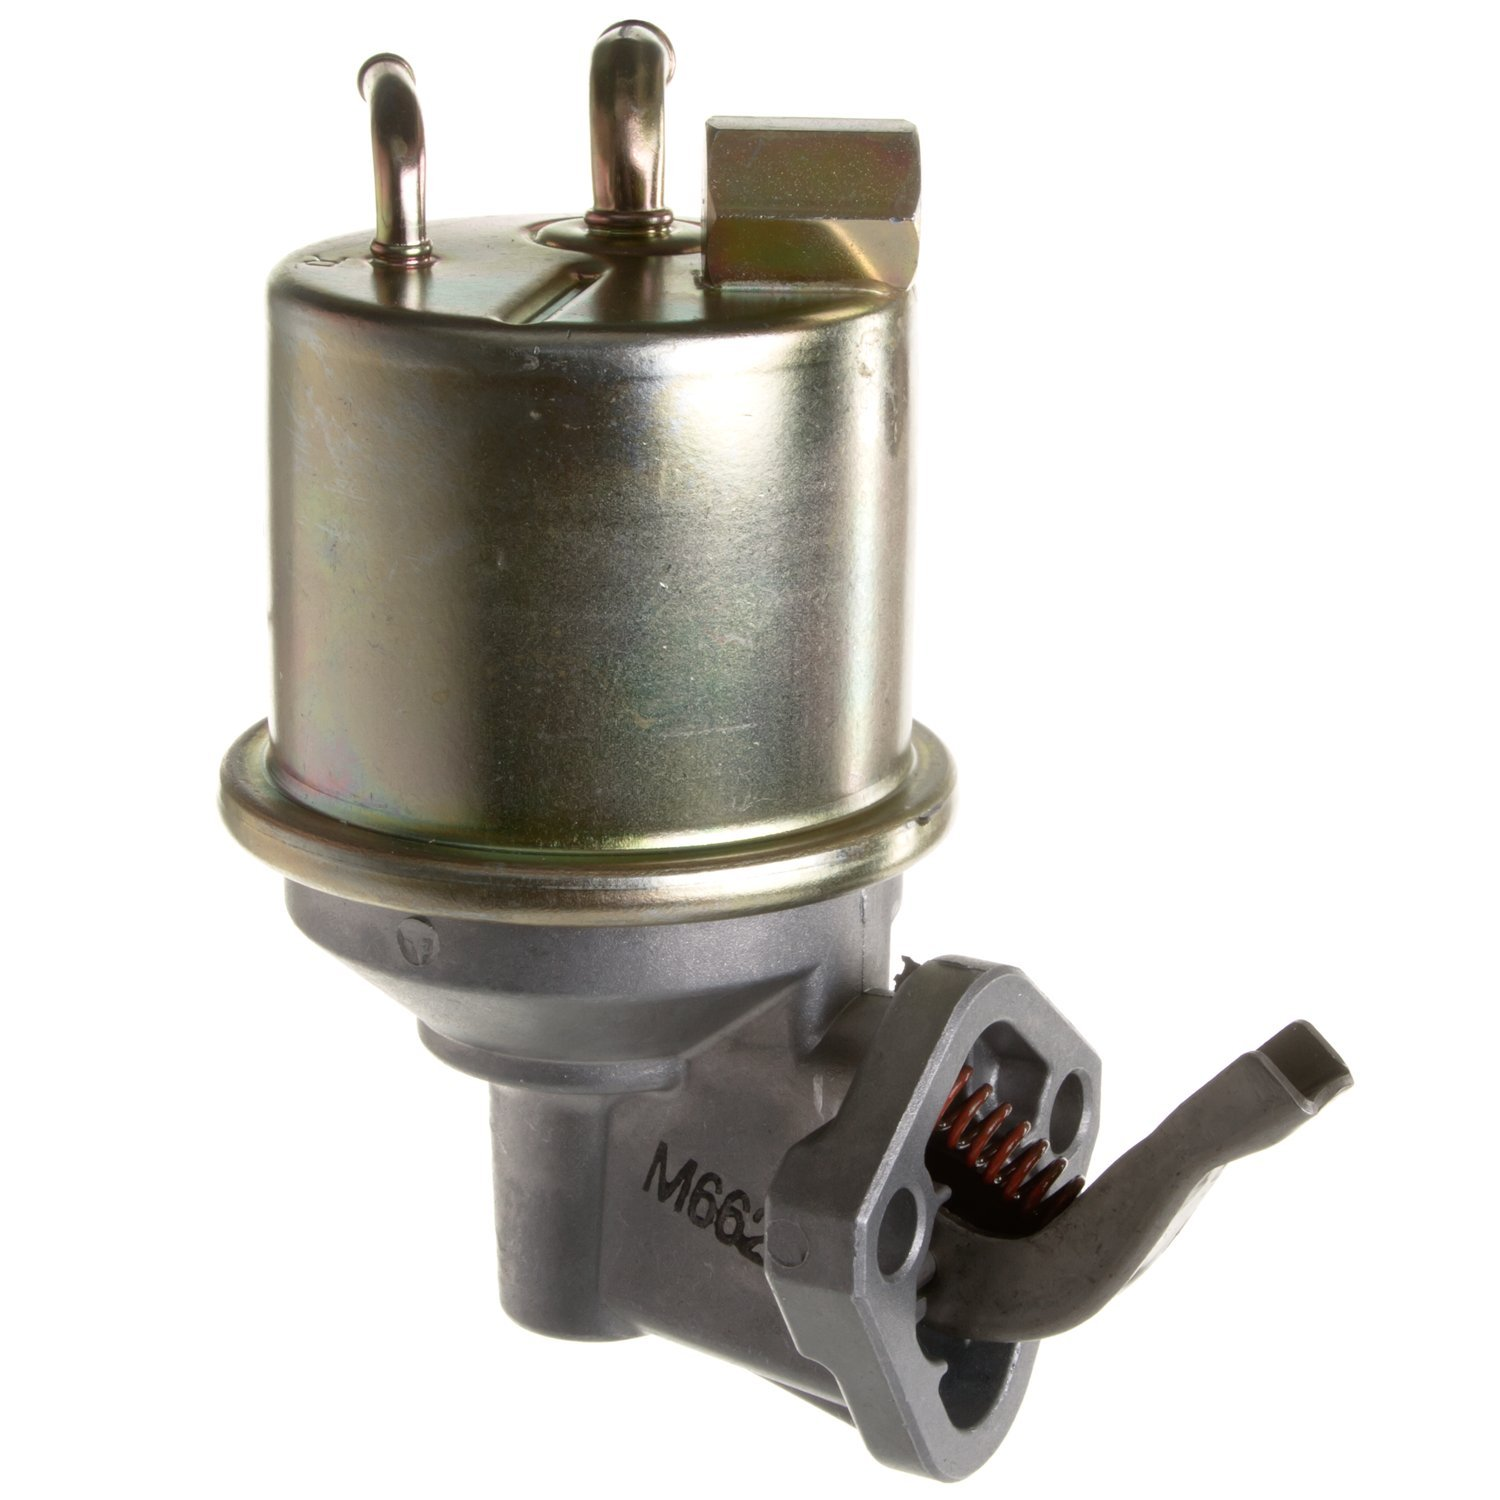 Delphi MF0011 Mechanical Fuel Pump